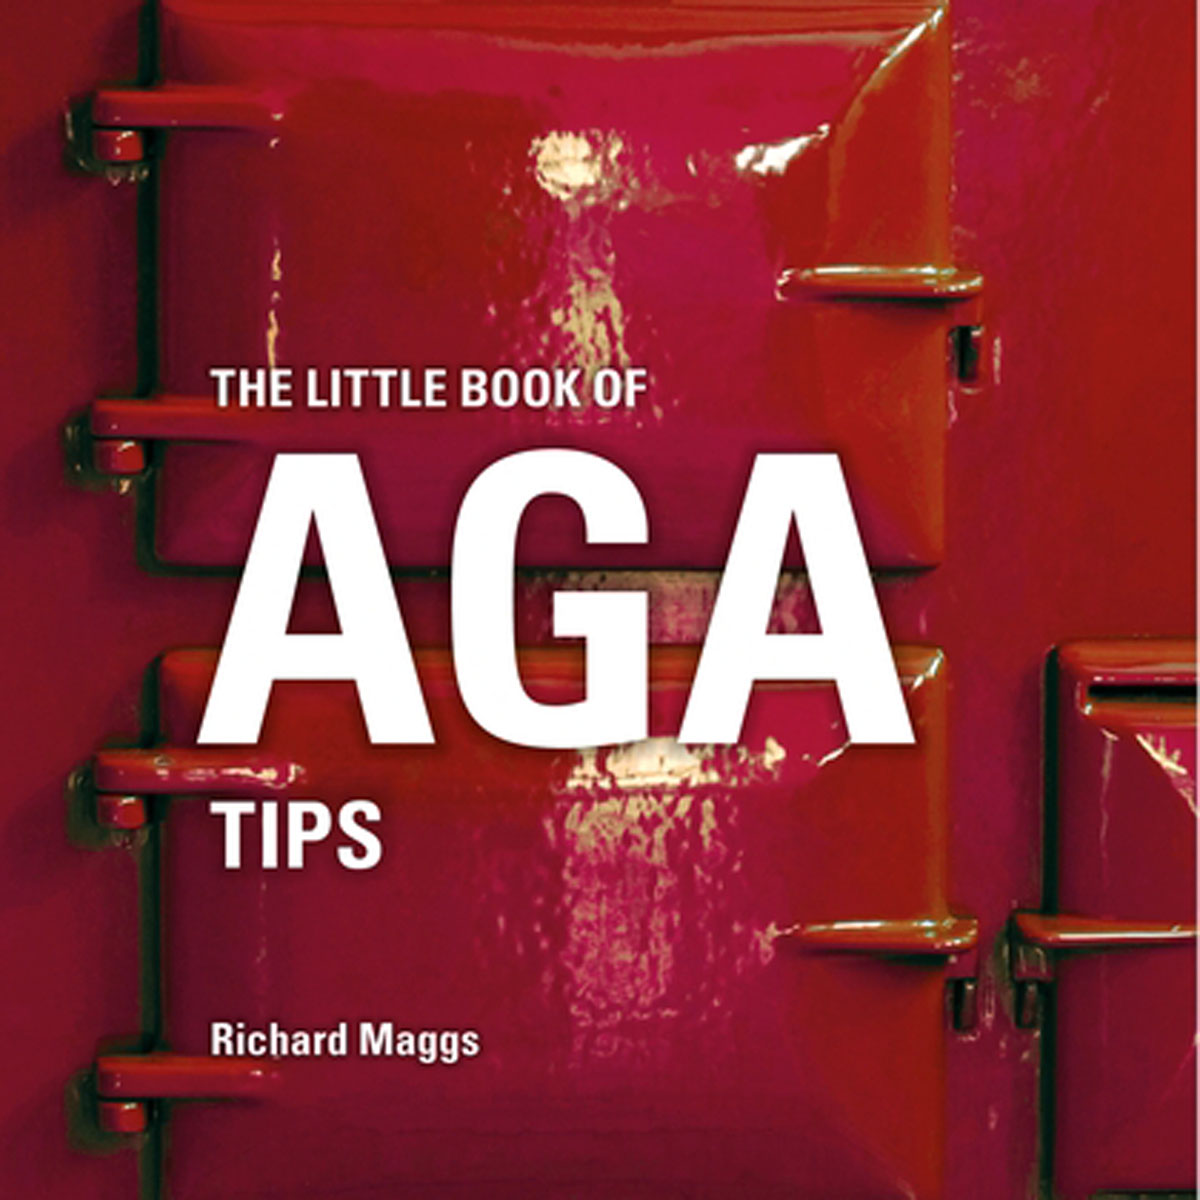 The Little Book of Aga Tips john cross the little black book for managers how to maximize your key management moments of power